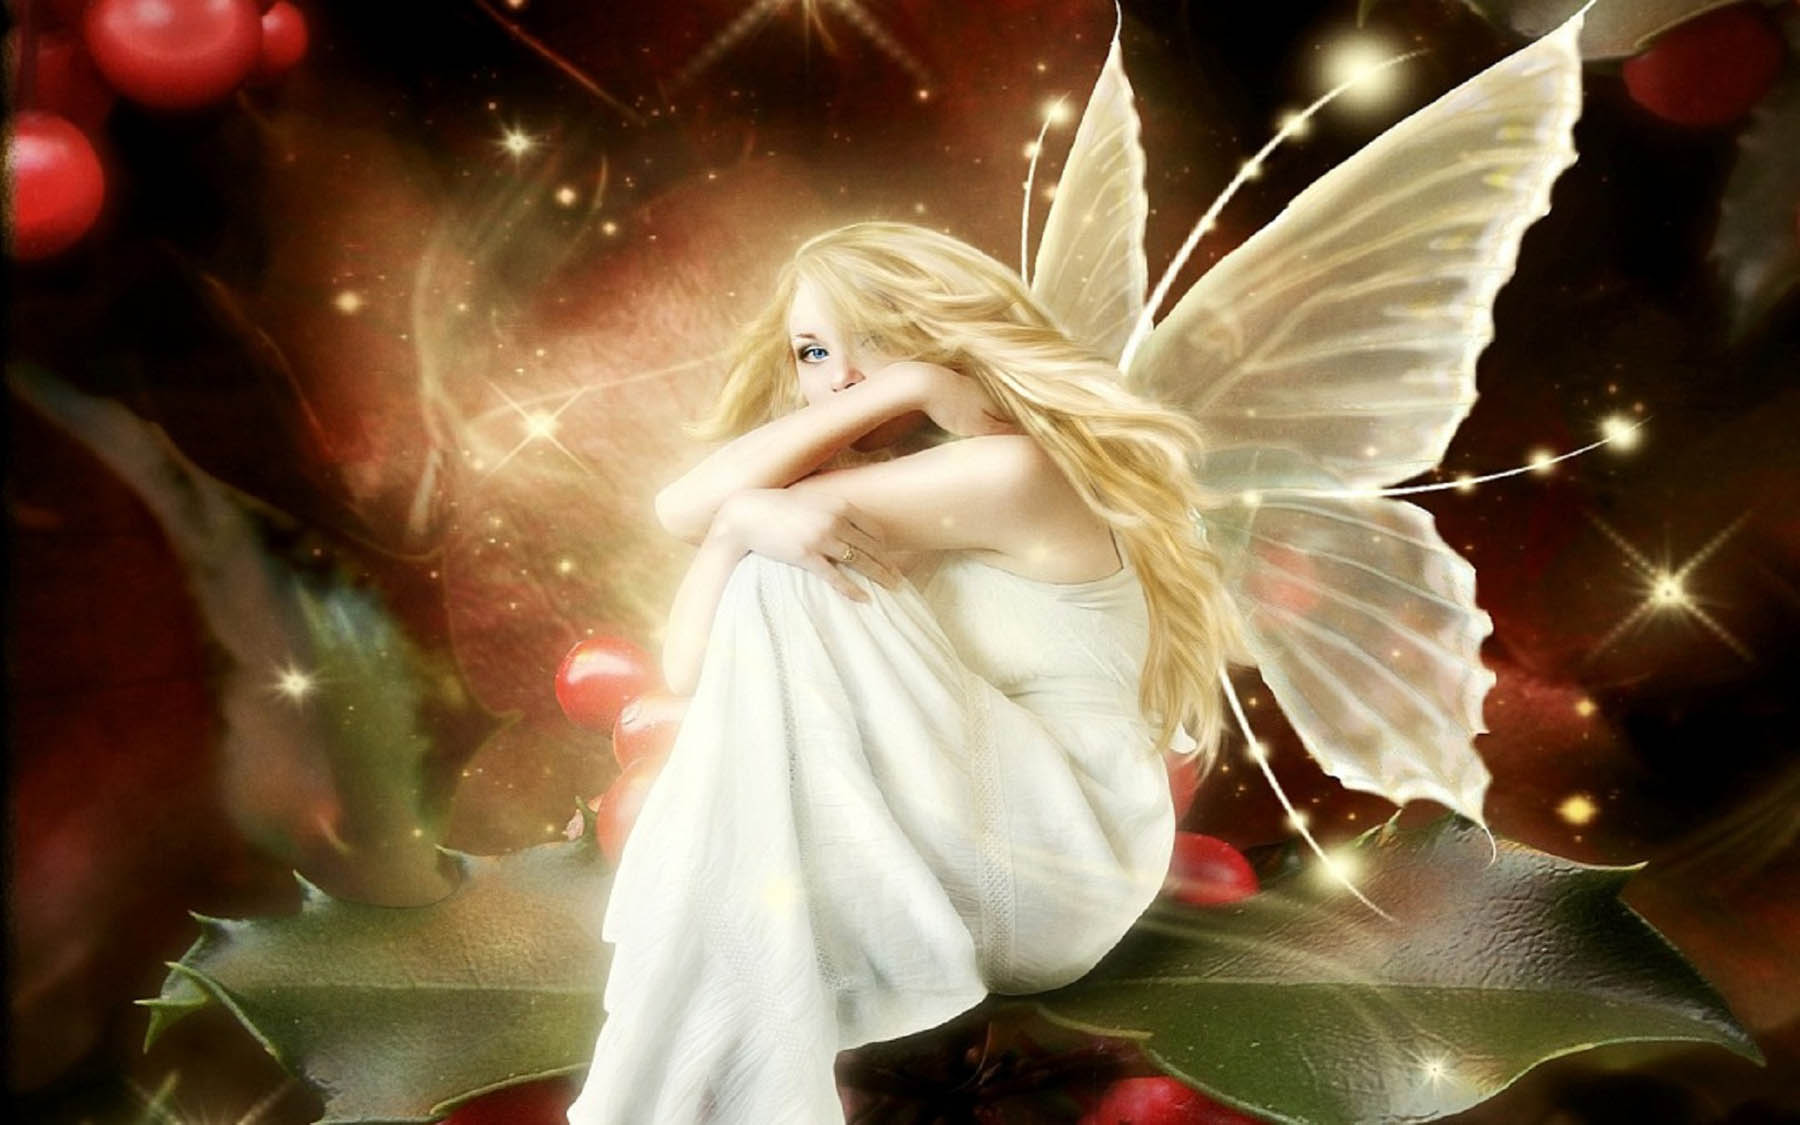 Beautiful Christmas Angel Wallpapers Daily Backgrounds in HD 1800x1125